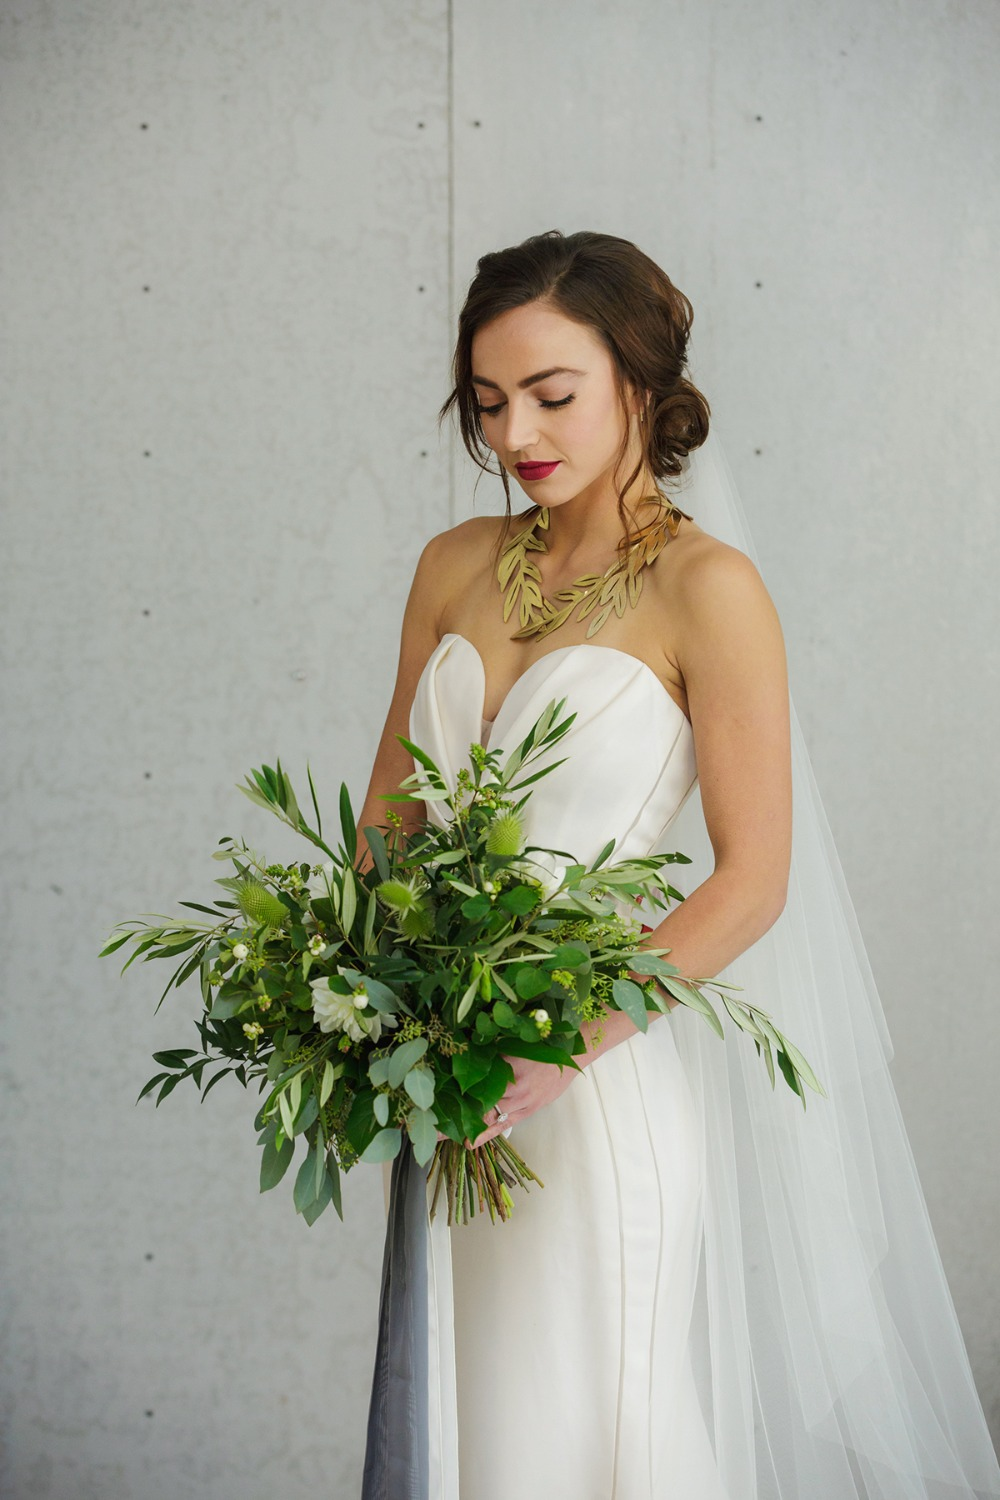 bride in modern wedding style with vintage vibe